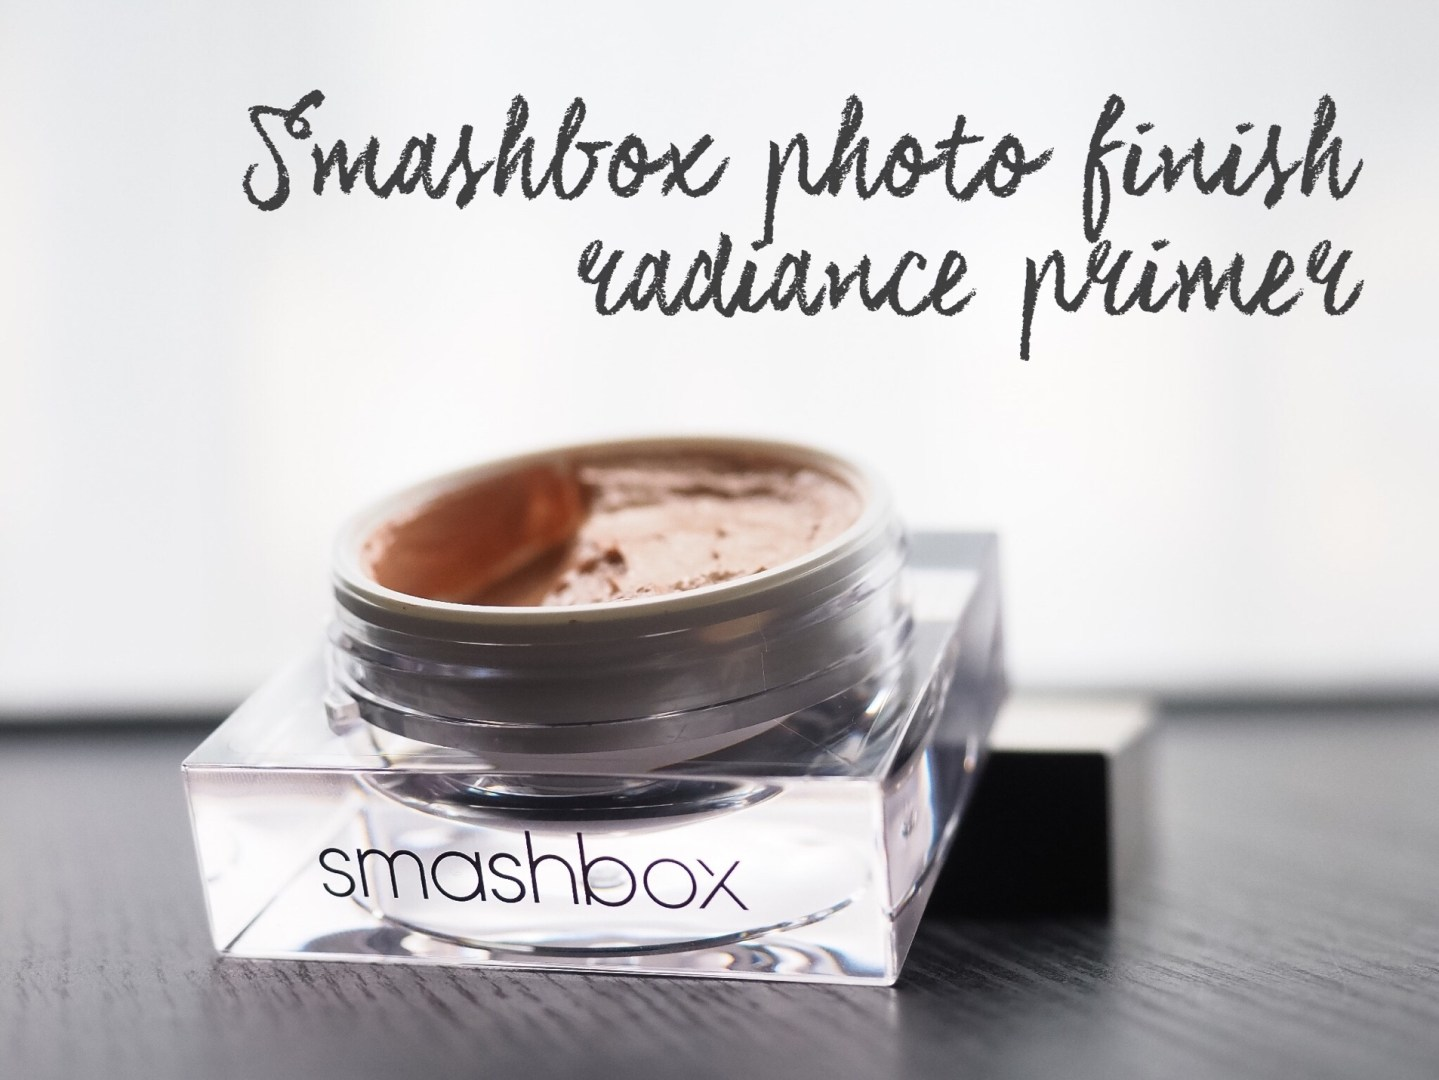 Smashbox photo finish radiance primer | review